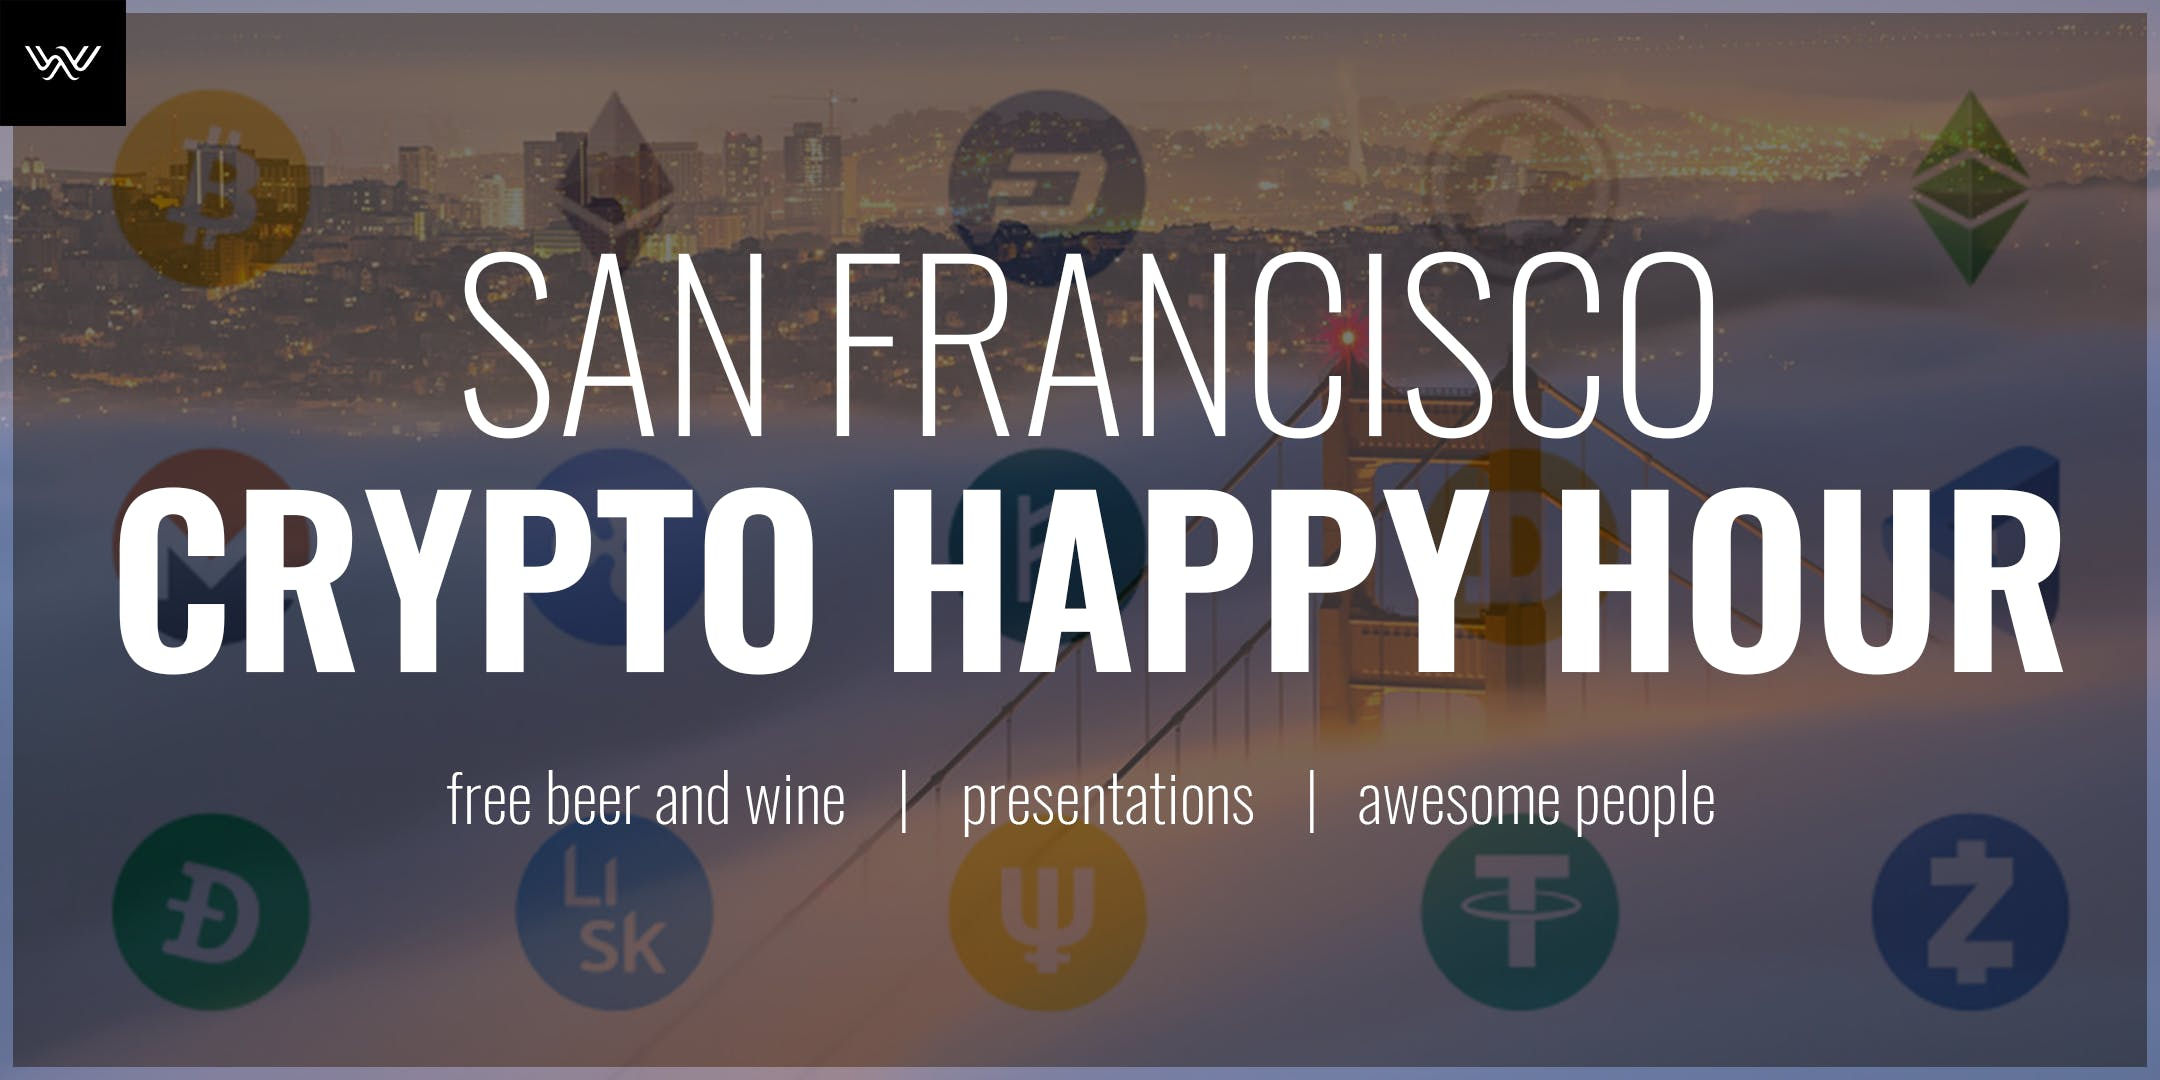 San Francisco Crypto Happy Hour w/ Presentati